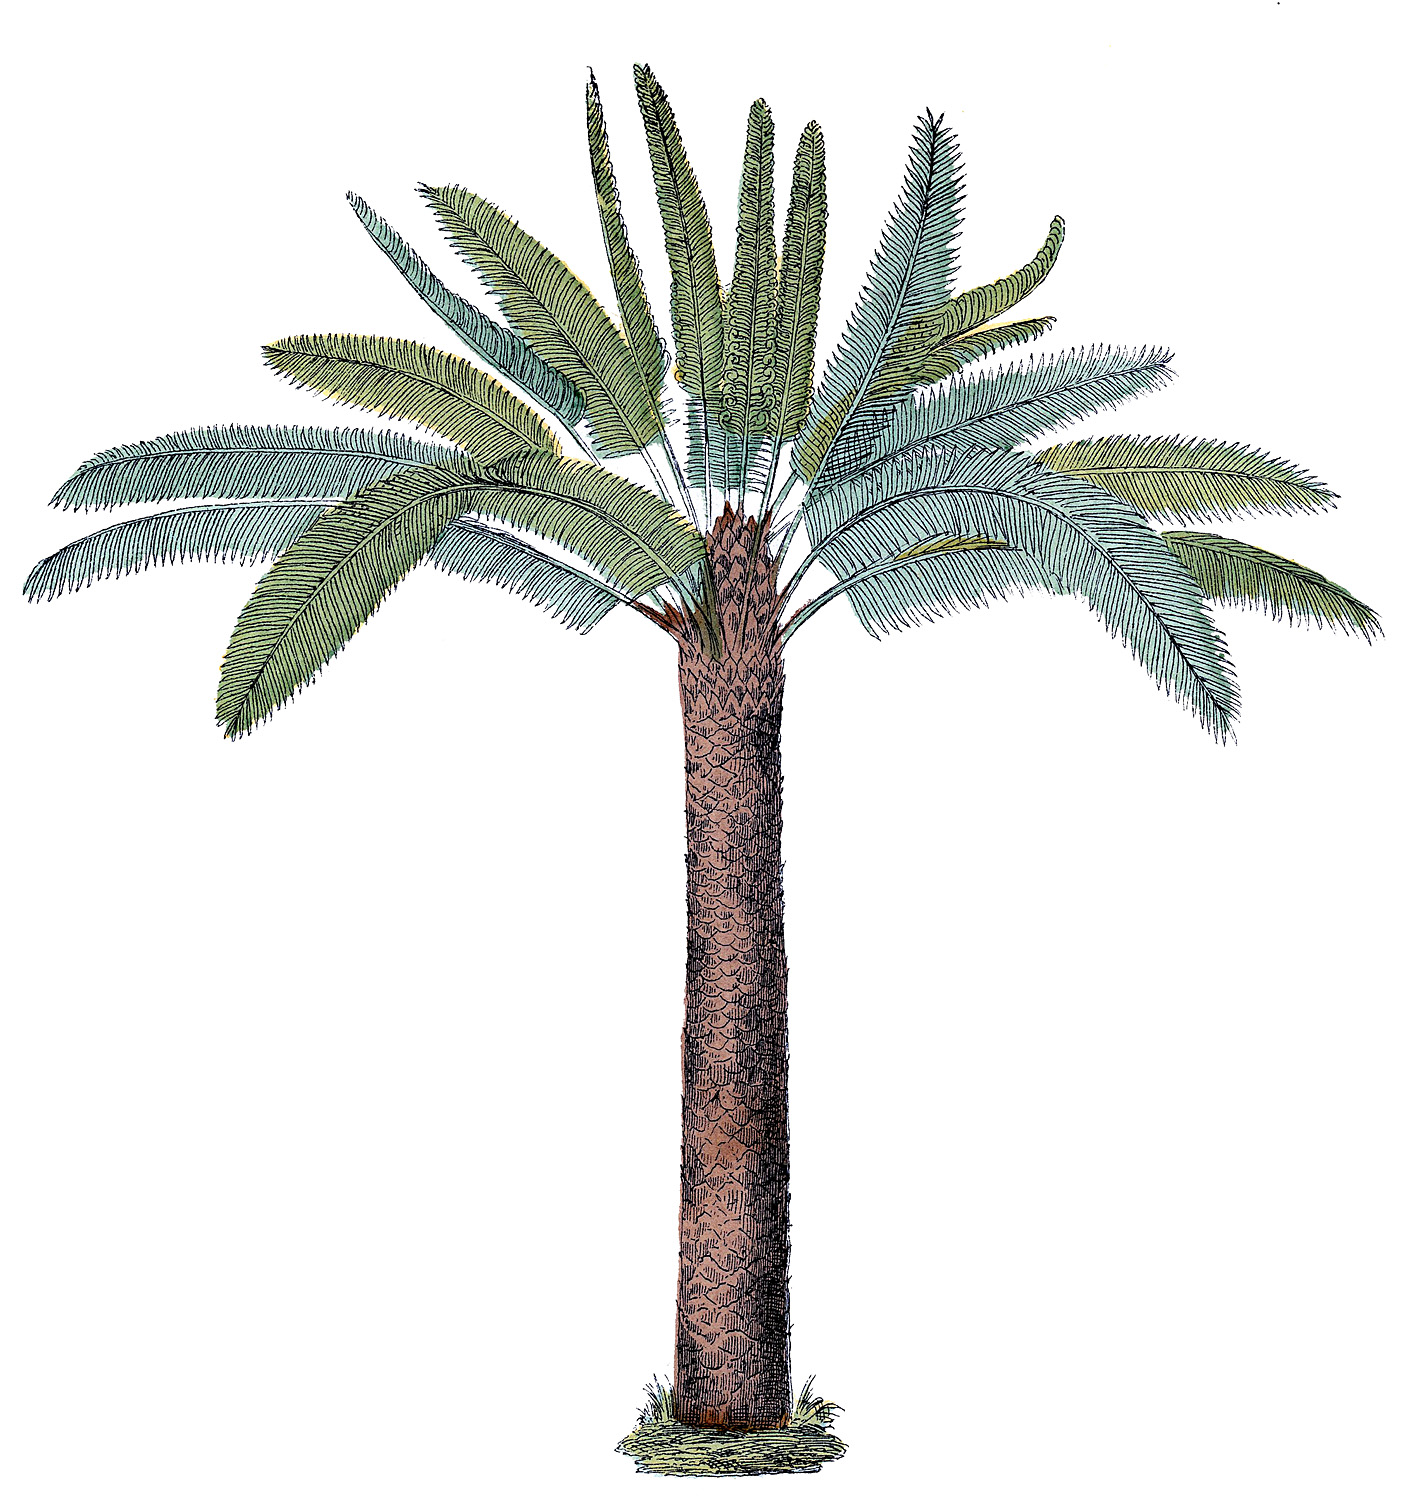 Vintage Palm Tree Graphic.